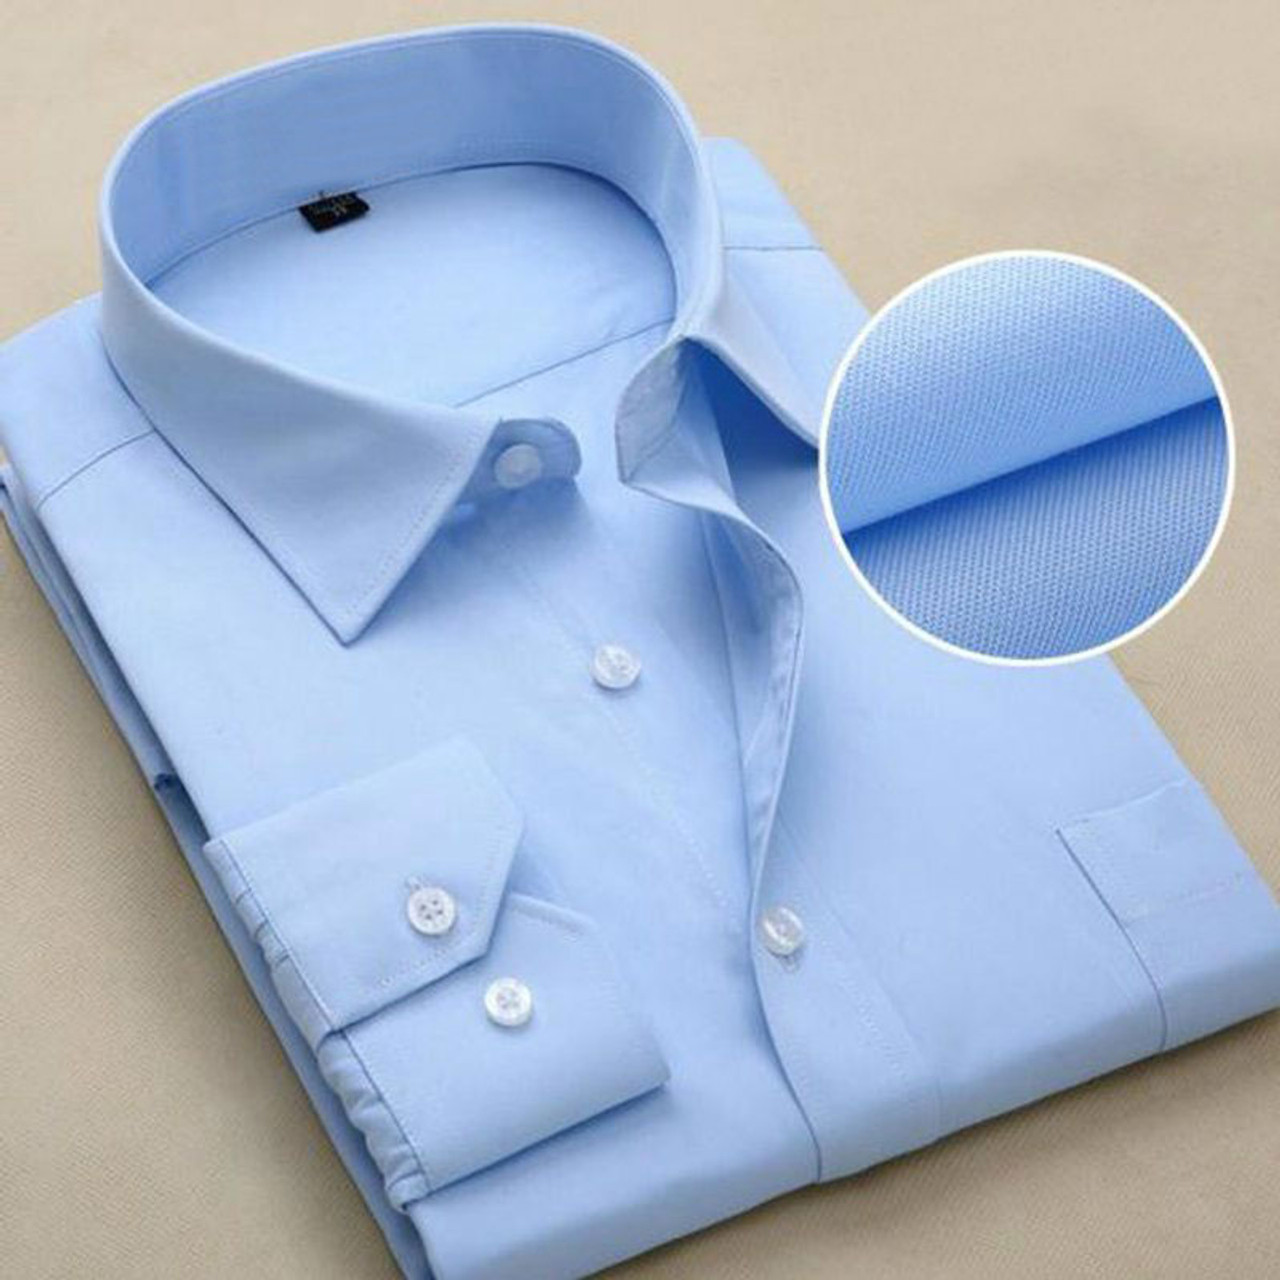 63dc8dcb81f ... 2017 New Design Twill Cotton Pure Color White Business Formal Dress  Shirts Men Fashion Long Sleeve ...